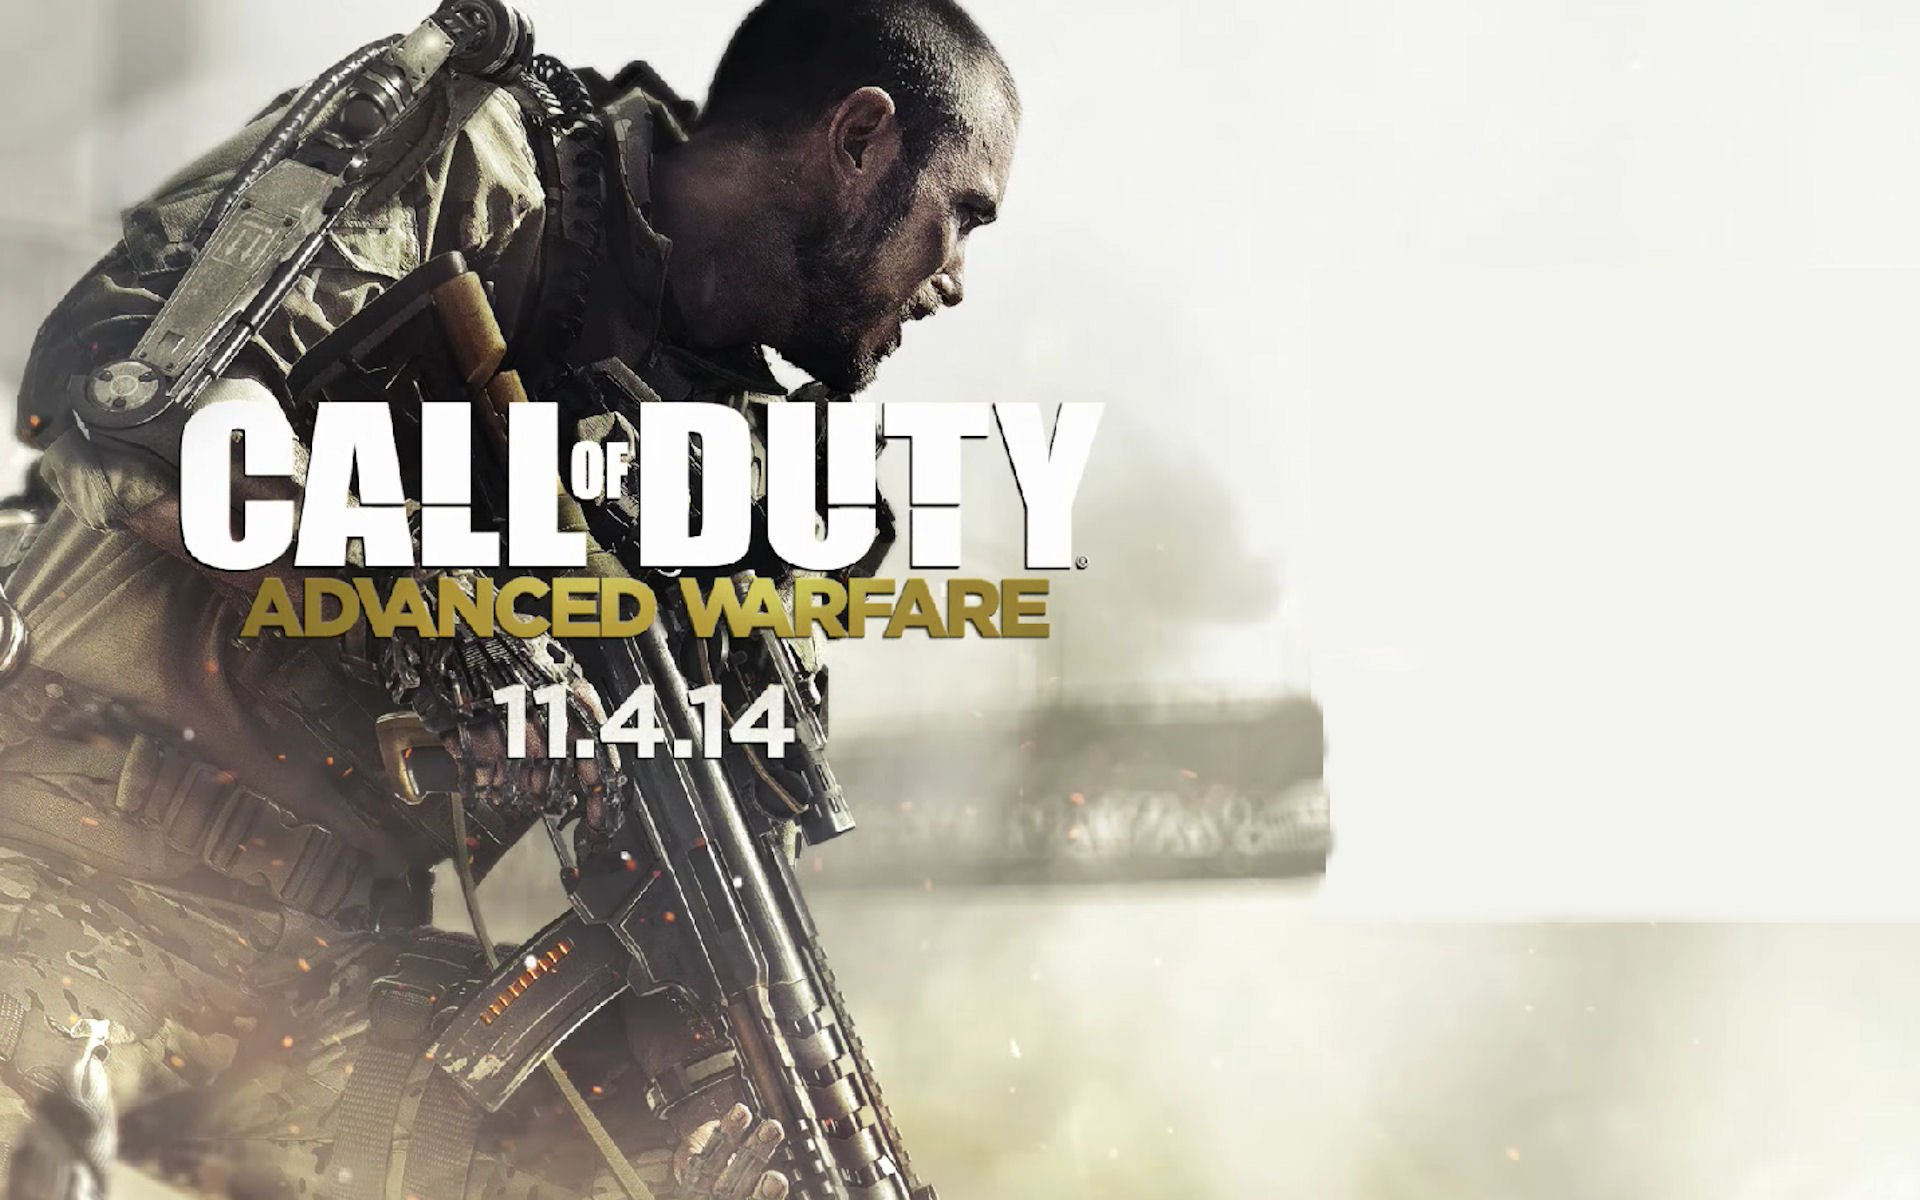 Оценки шутера Call of Duty: Advanced Warfare. - Изображение 1